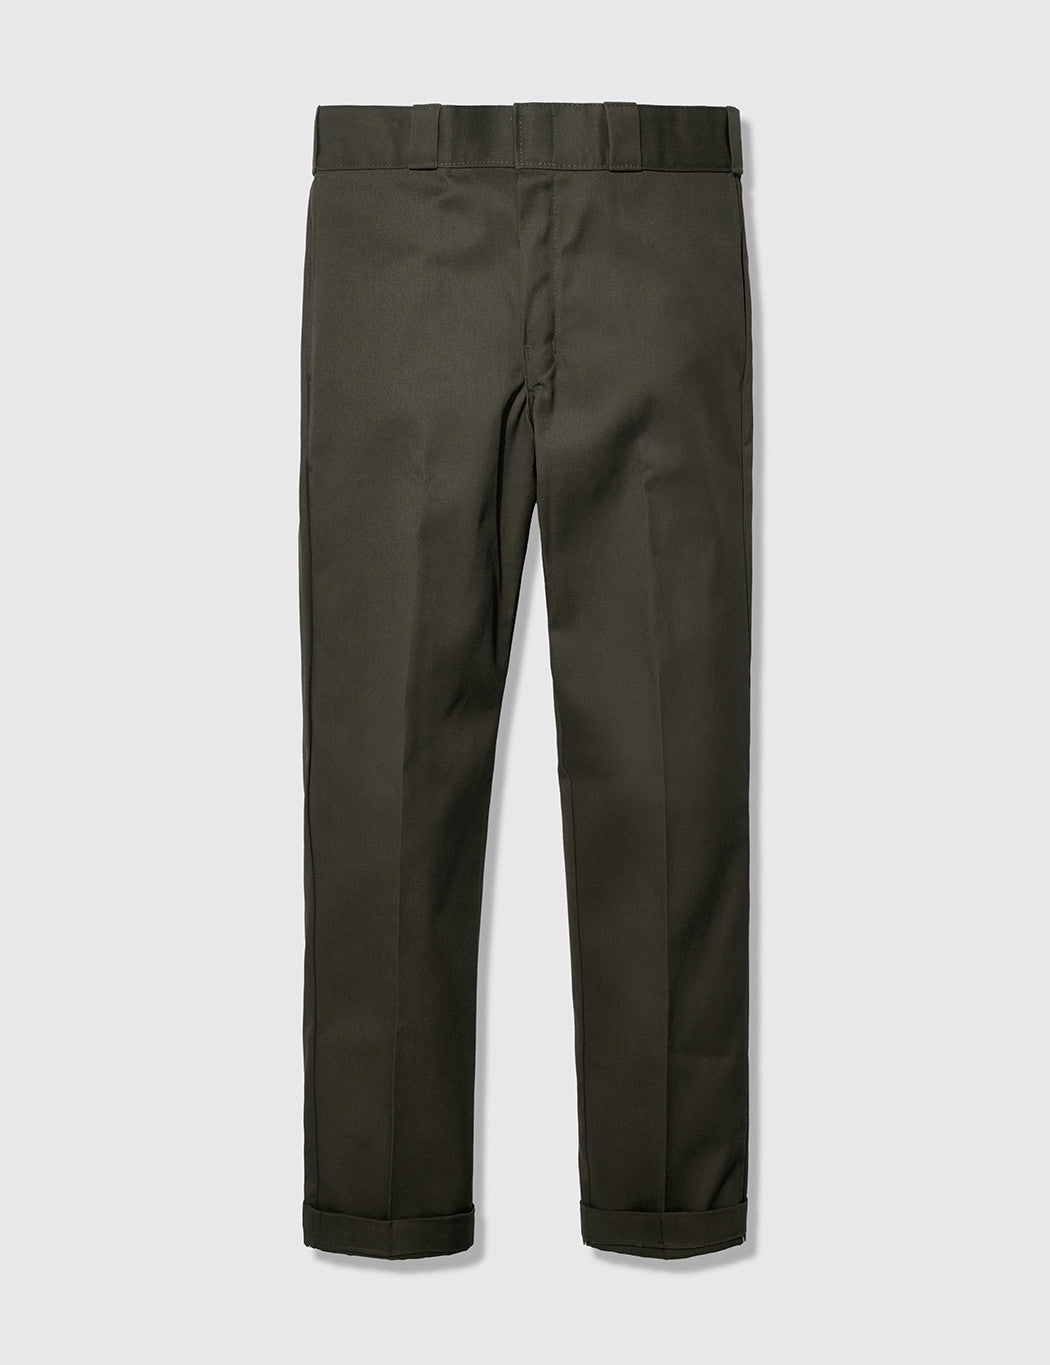 Dickies 874 Original Relaxed Work Pant (Relaxed) - Olive Green